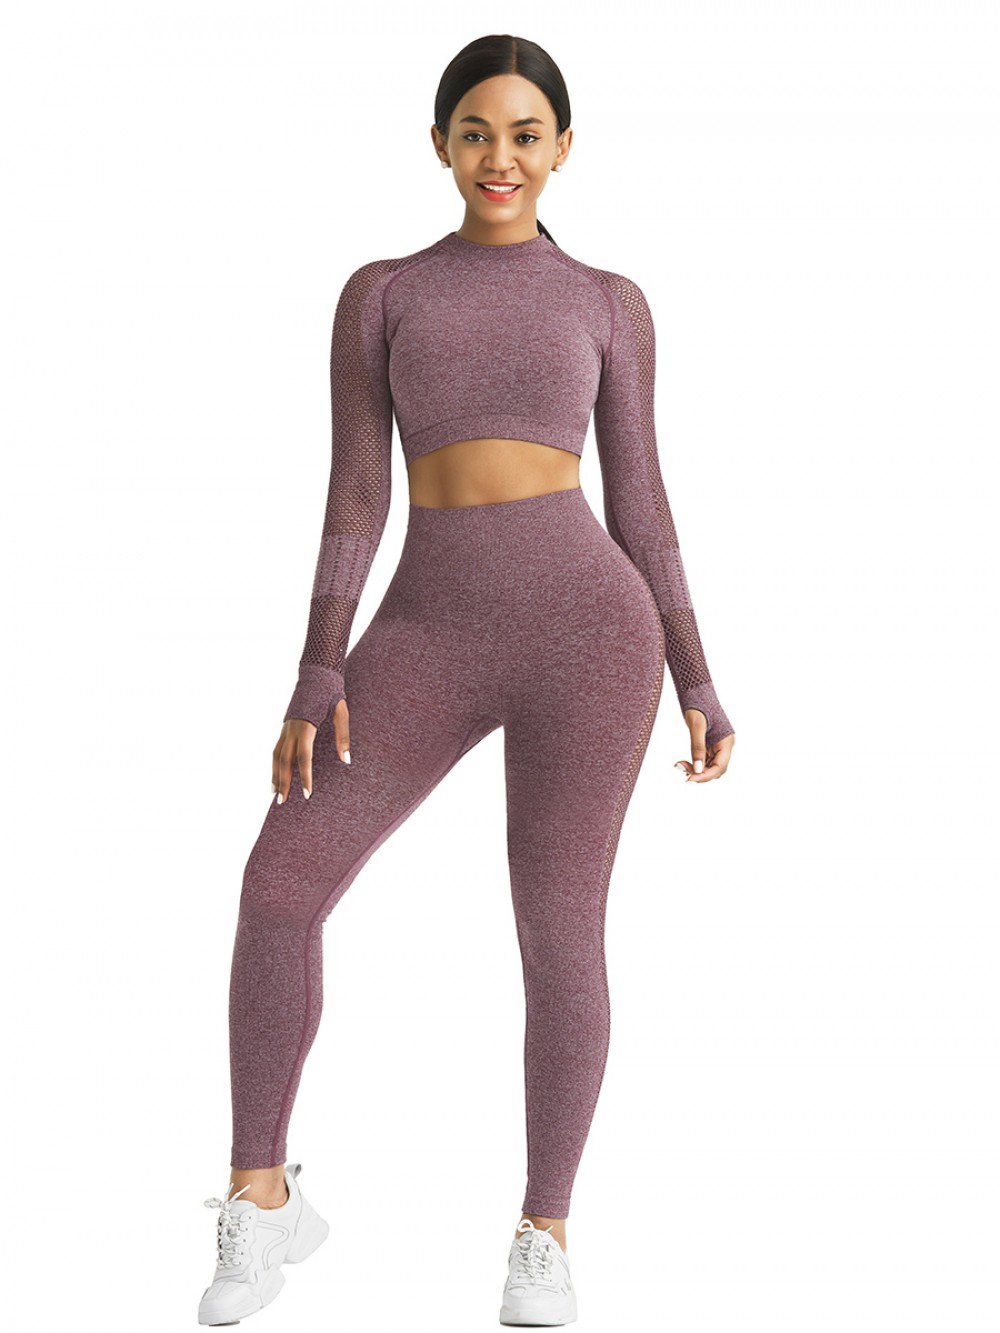 Stretched Wine Red Seamless Yoga Leggings Ankle Length Super Faddish